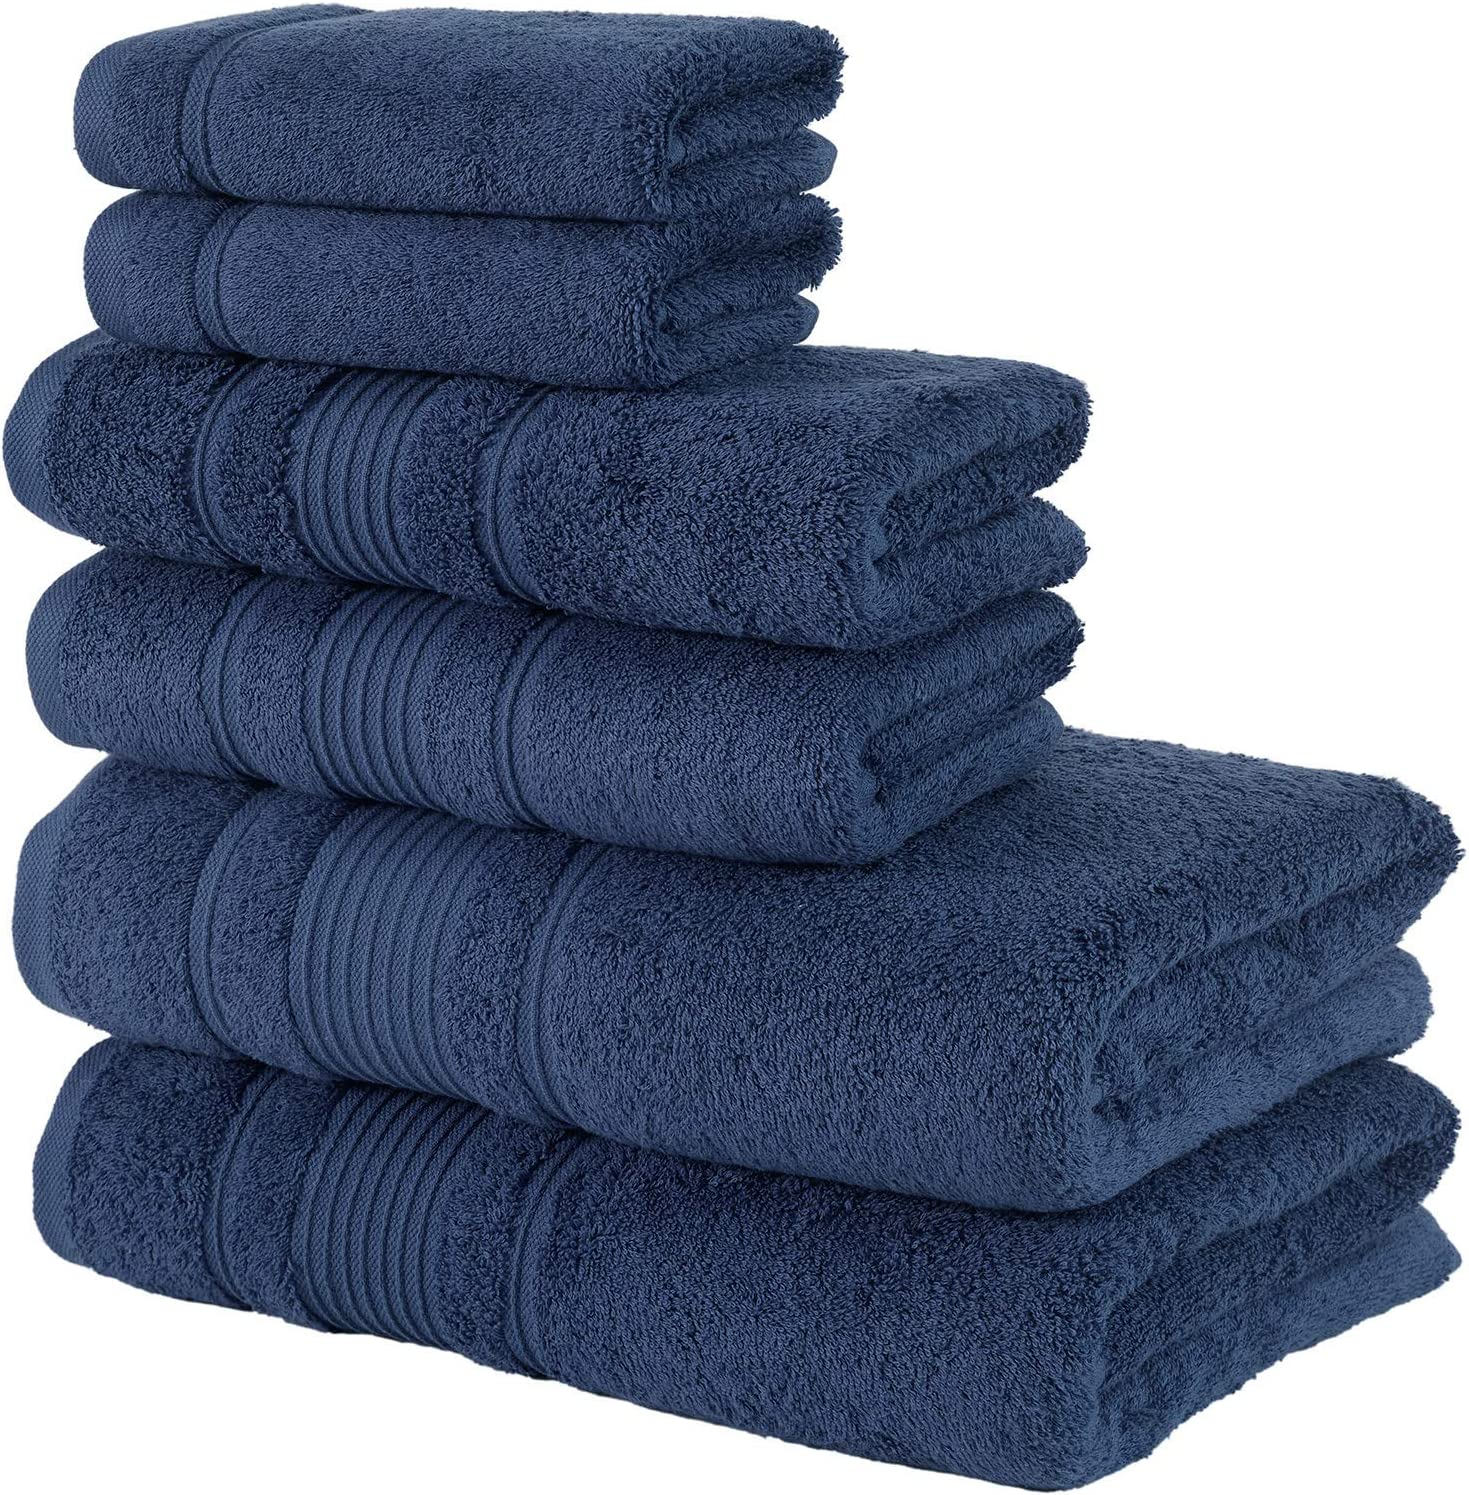 Qute Home Spa & Hotel Towels 6 Piece Towel Set, 2 Bath Towels, 2 Hand Towels, and 2 Washcloths - Navy Blue